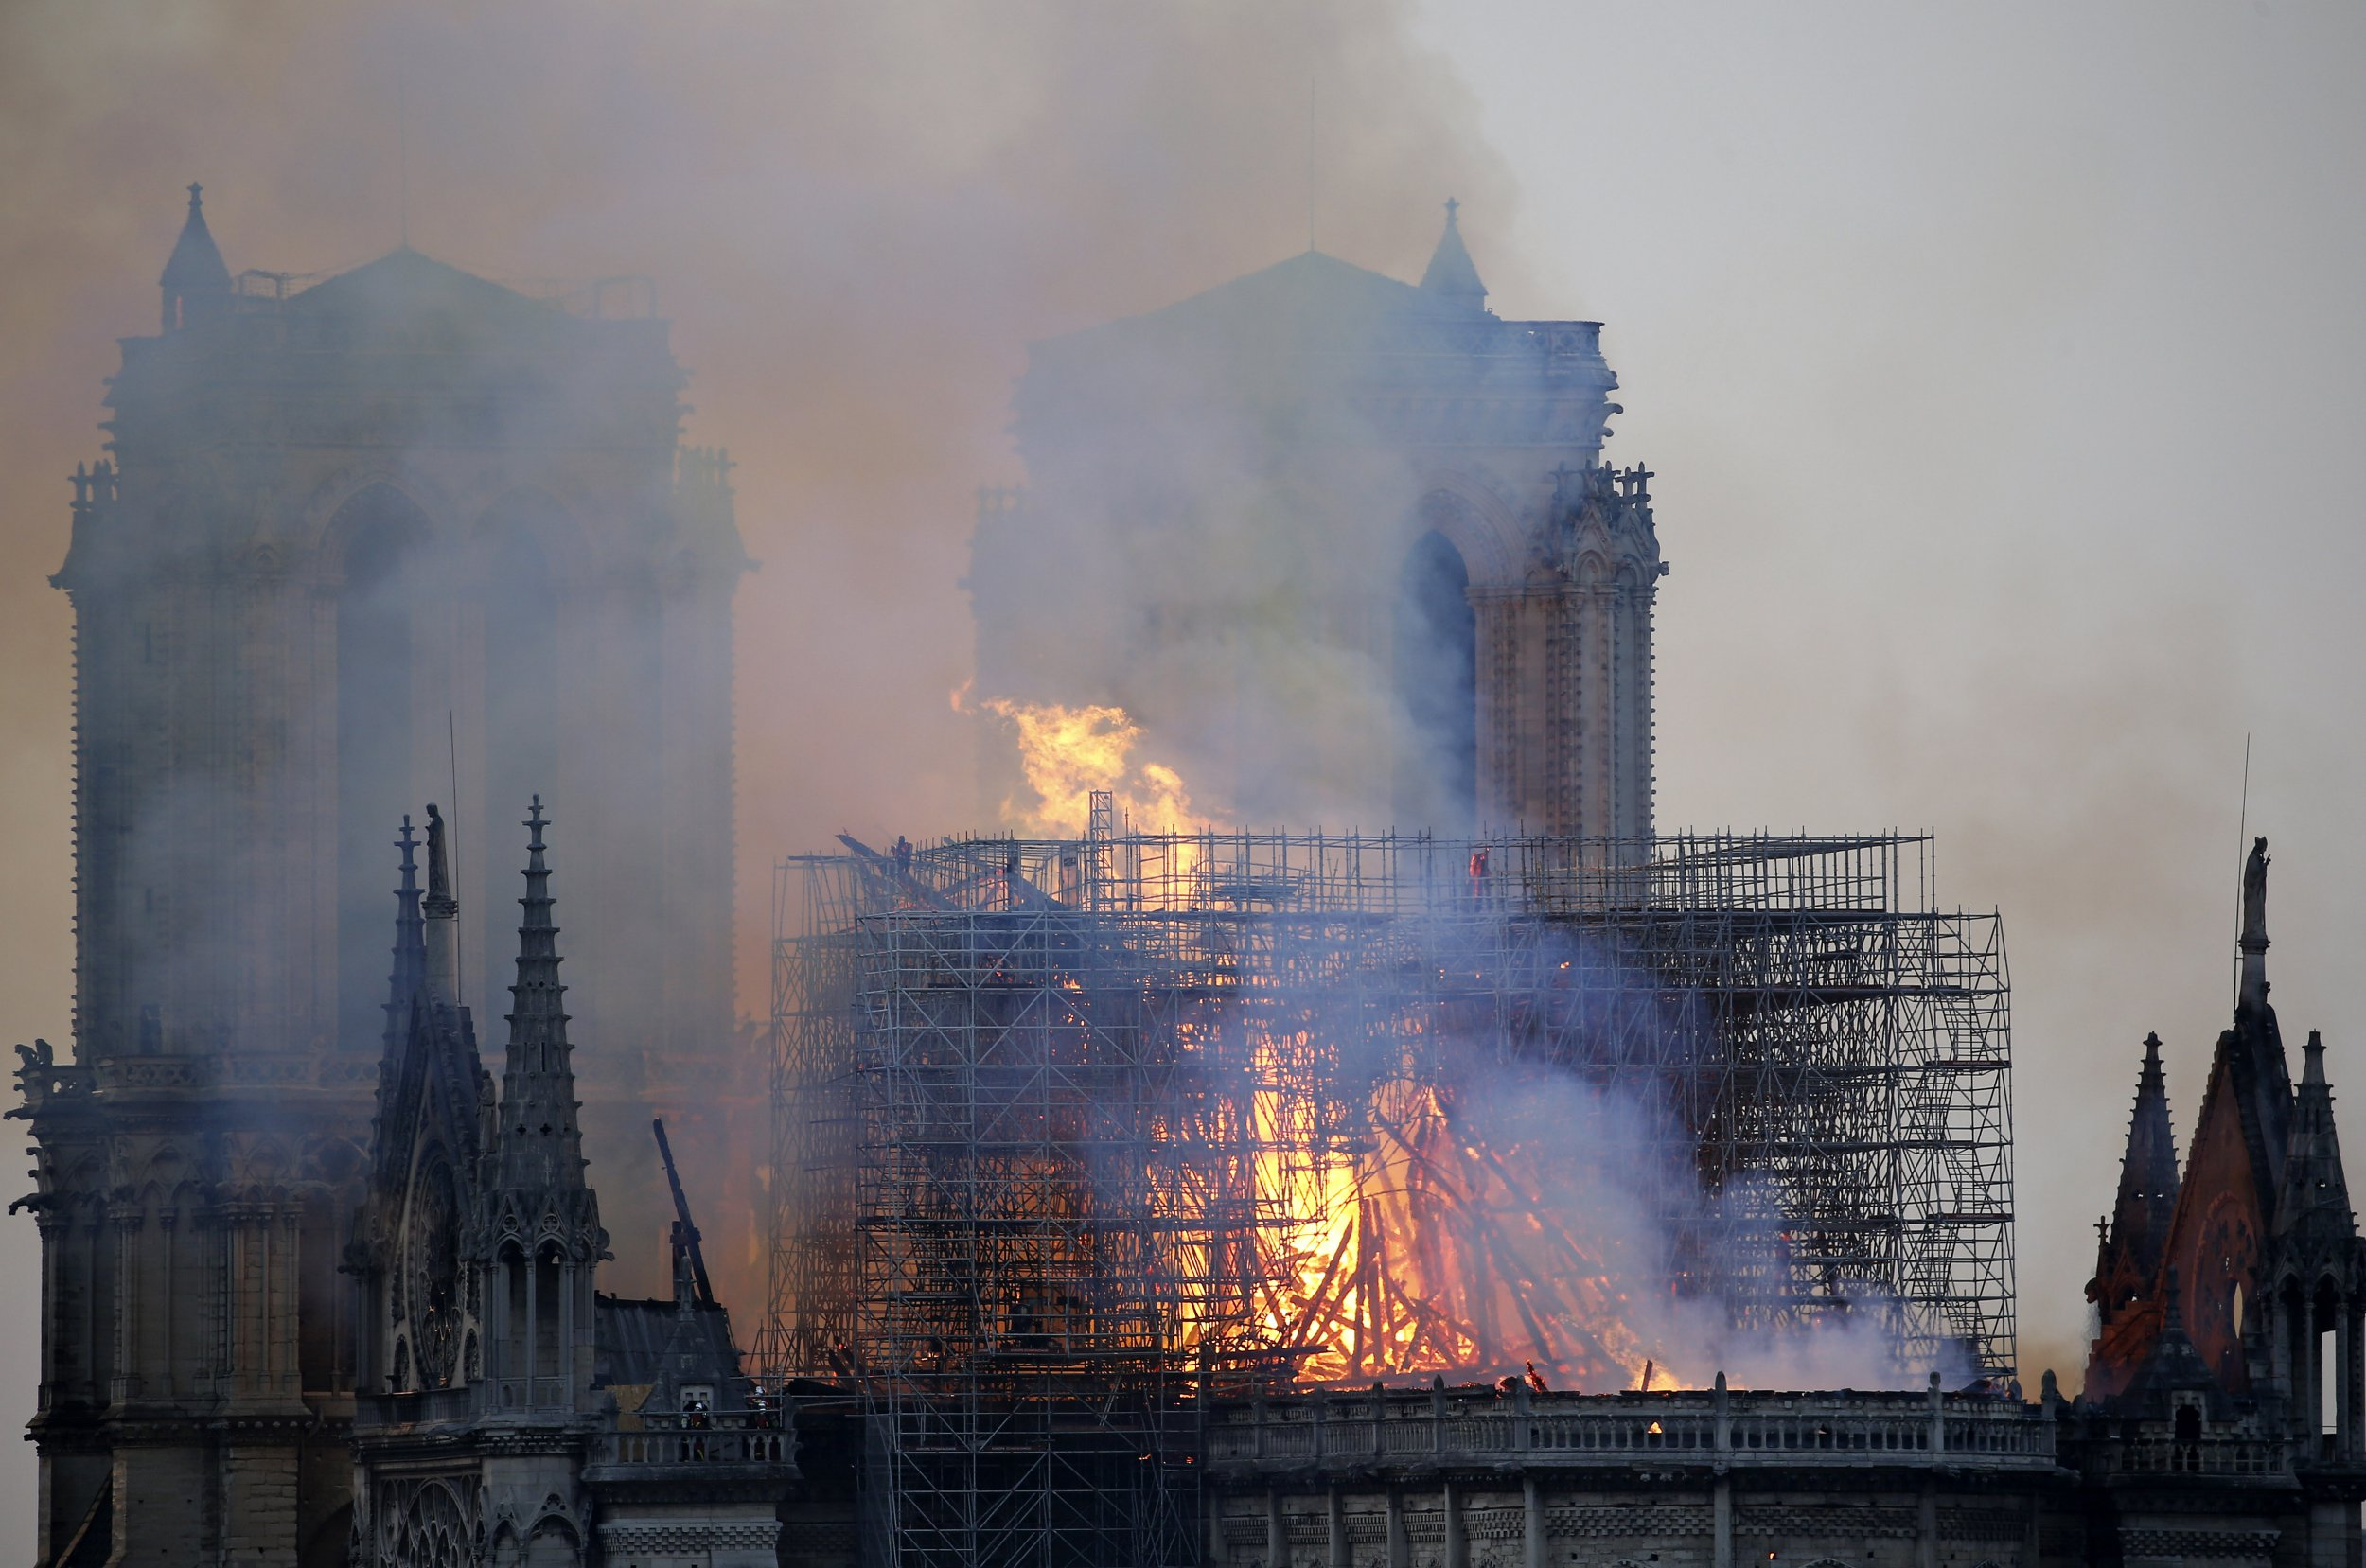 PARIS, FRANCE - APRIL 15: Flames and smoke are seen billowing from the roof at Notre-Dame Cathedral on April 15, 2019 in Paris, France. A fire broke out on Monday afternoon and quickly spread across the building, collapsing the spire. The cause is yet unknown but officials said it was possibly linked to ongoing renovation work. (Photo by Chesnot/Getty Images)